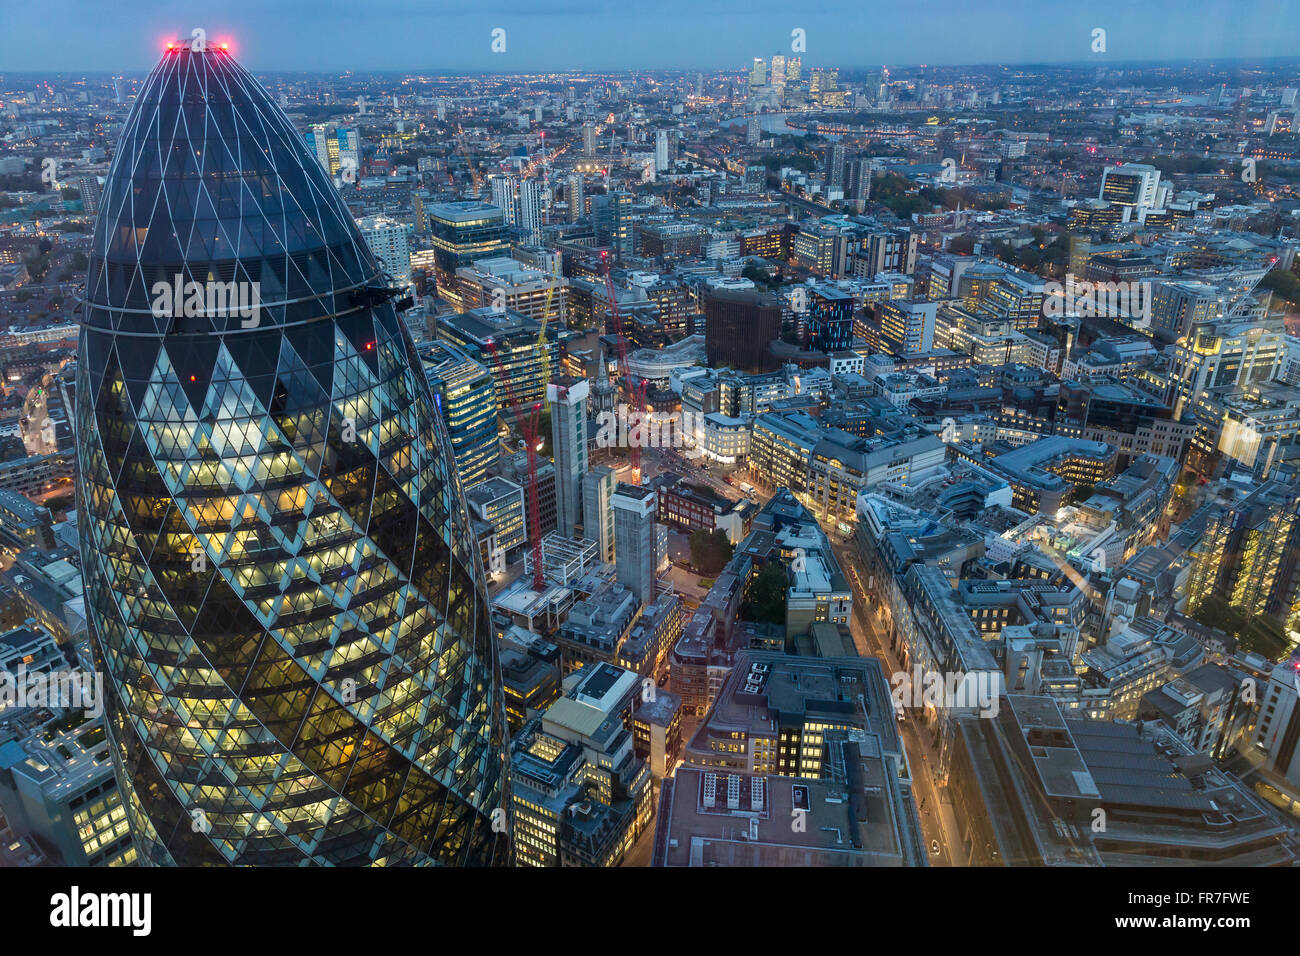 City of London skyline at dusk. - Stock Image